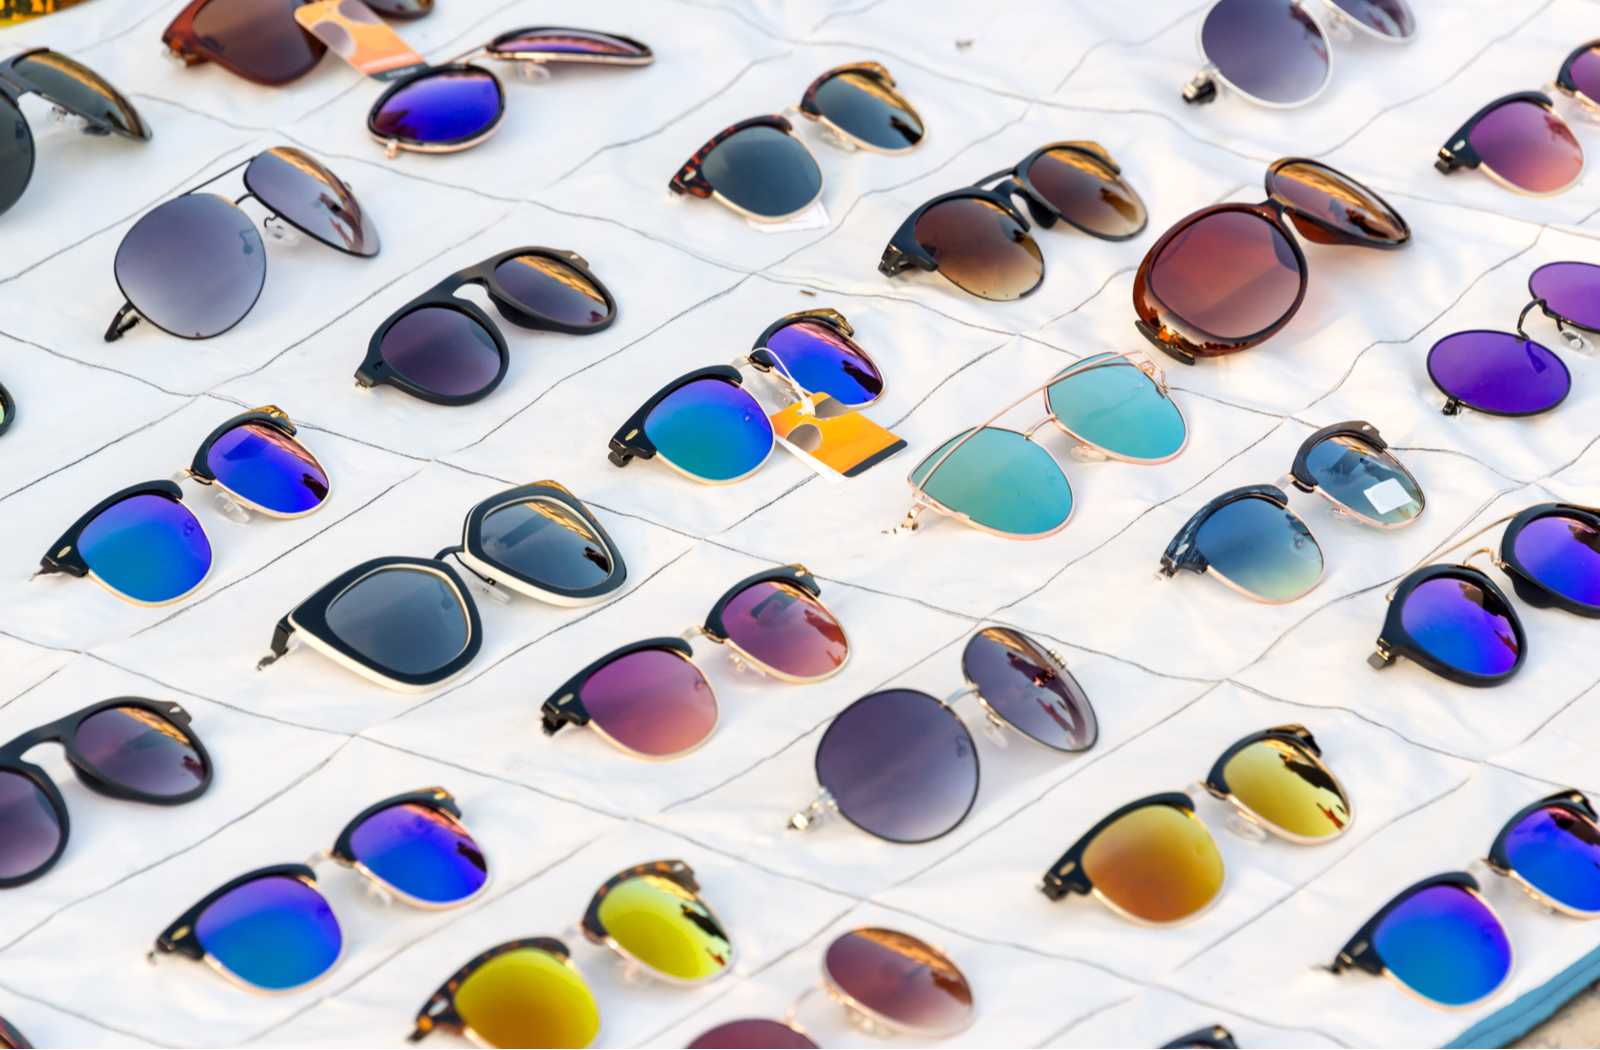 Colourful lenses and fashionable glasses arranged on a display canvas